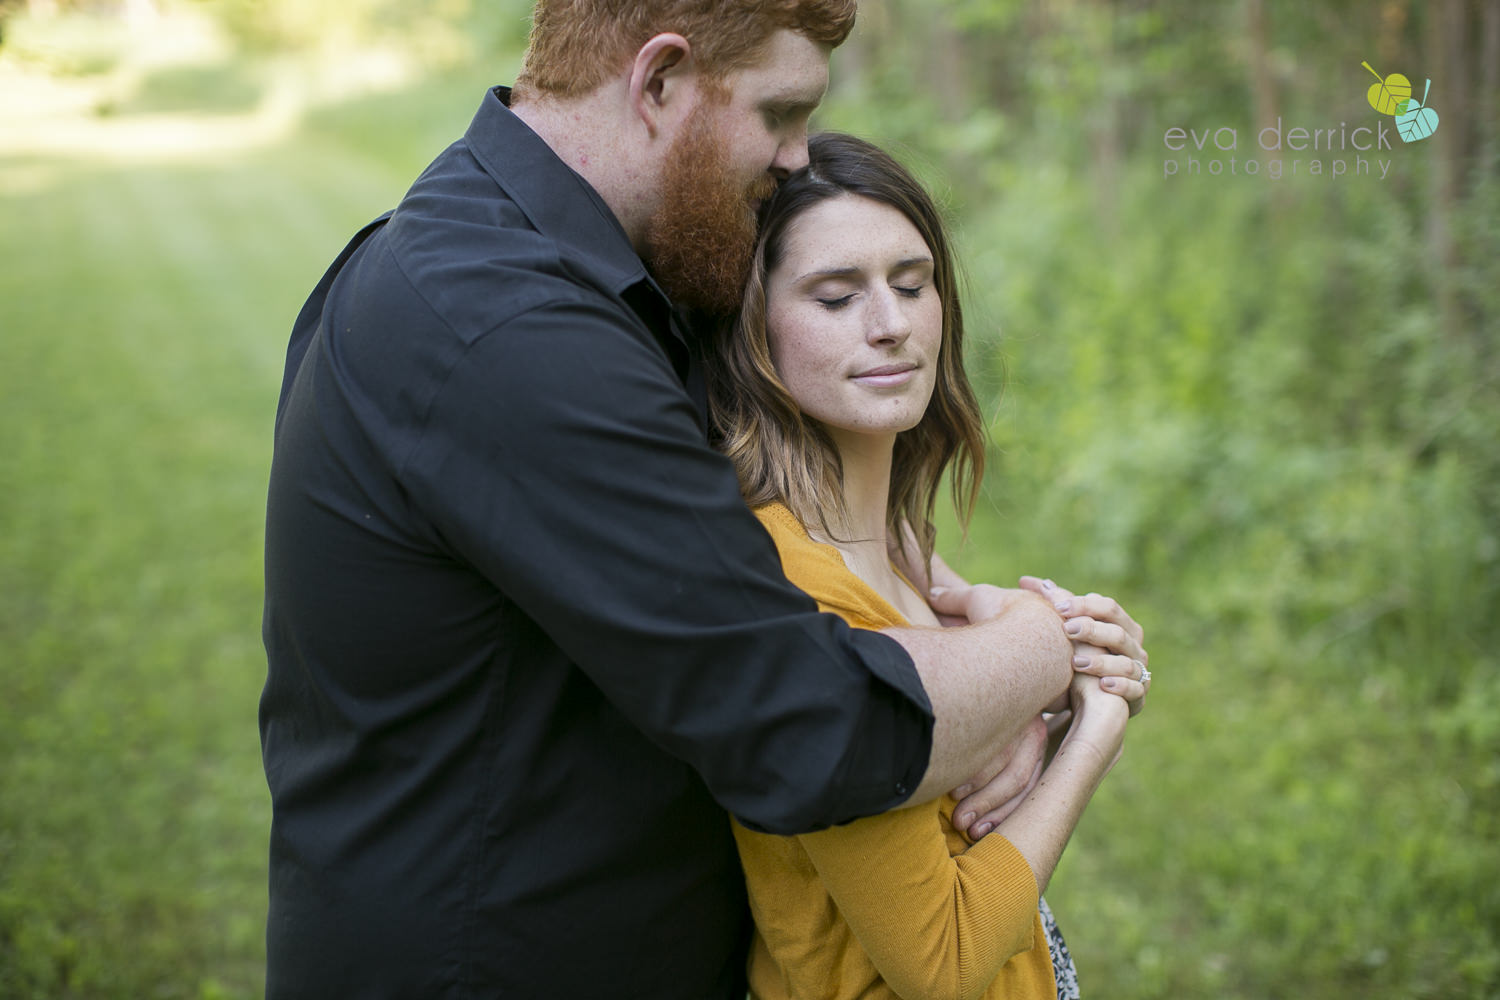 Millgrove-Photographer-Millgrove-Engagement-Session-photography-by-Eva-Derrick-Photography-003.JPG